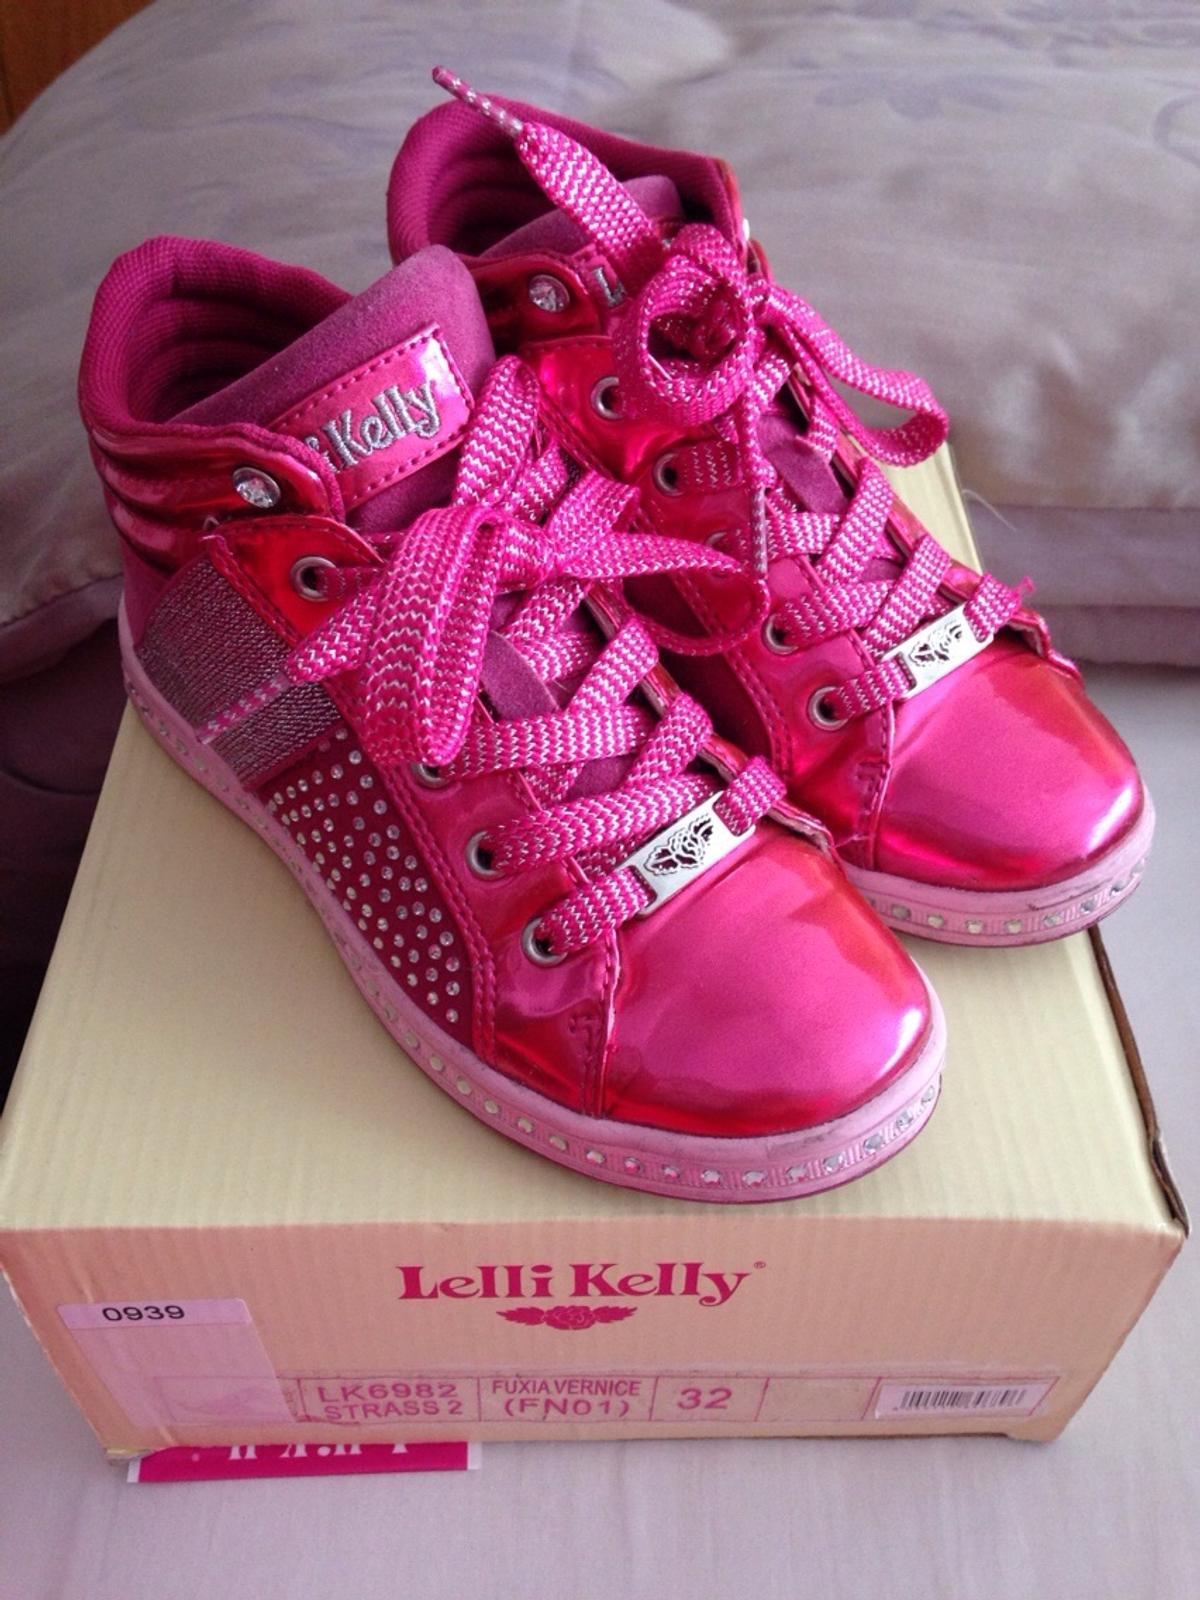 9ae6ac5bdb5b3 Lelli kelly pink girls boots in L13 Liverpool for £15.00 for sale ...